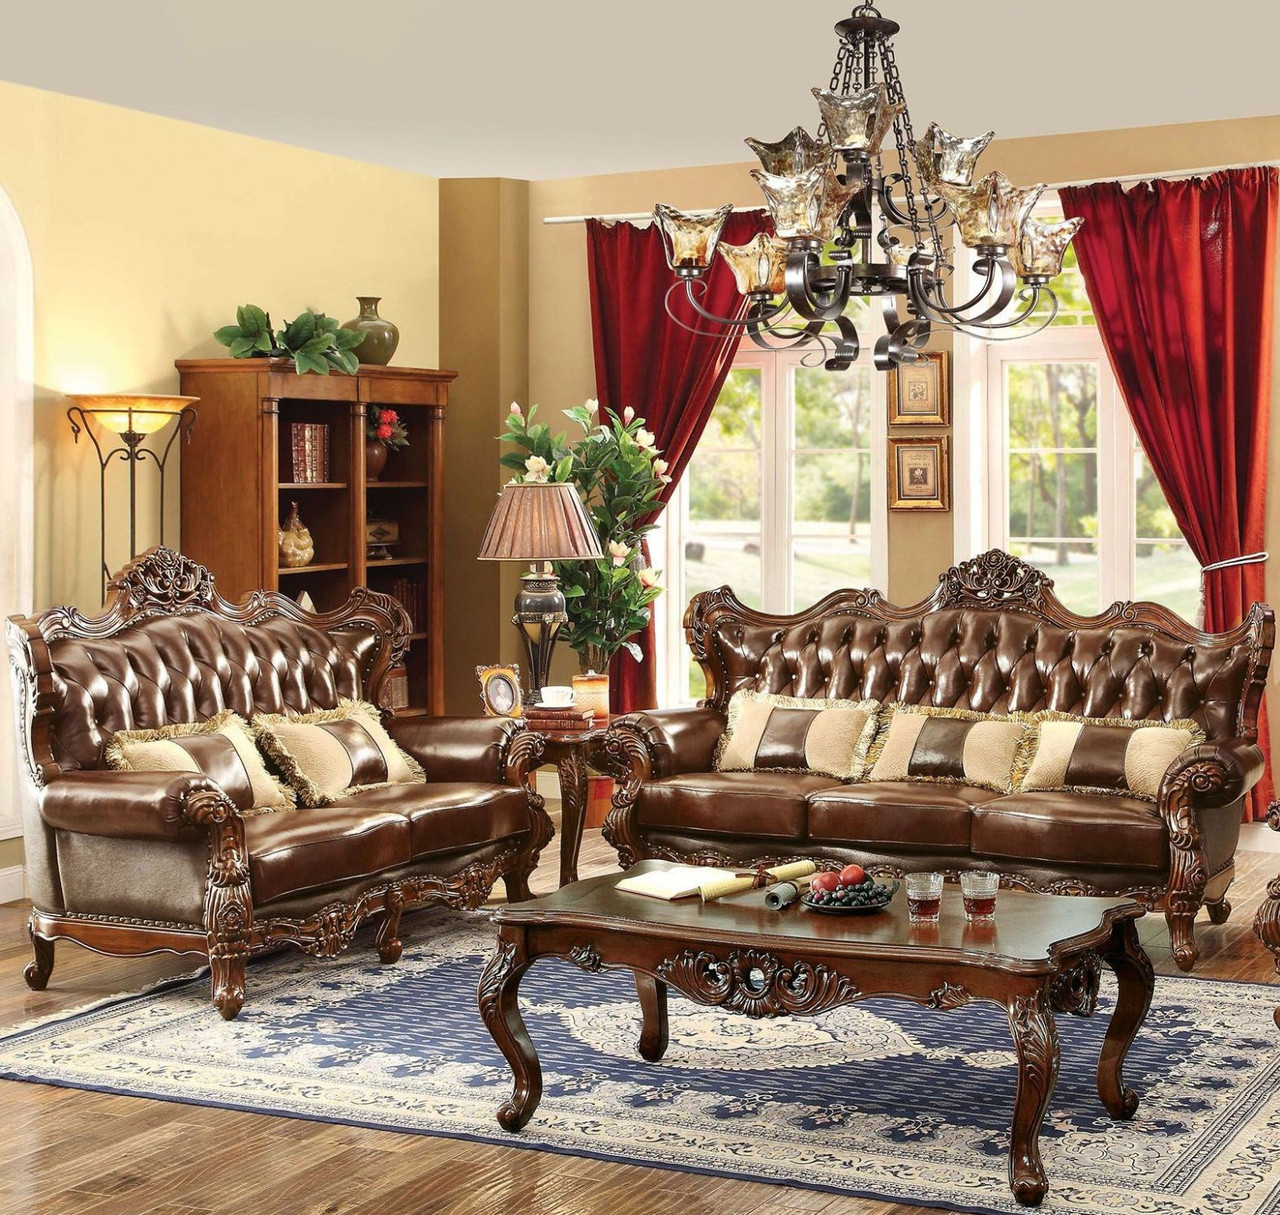 Awesome Southampton Leather Sofa Loveseat Andrewgaddart Wooden Chair Designs For Living Room Andrewgaddartcom